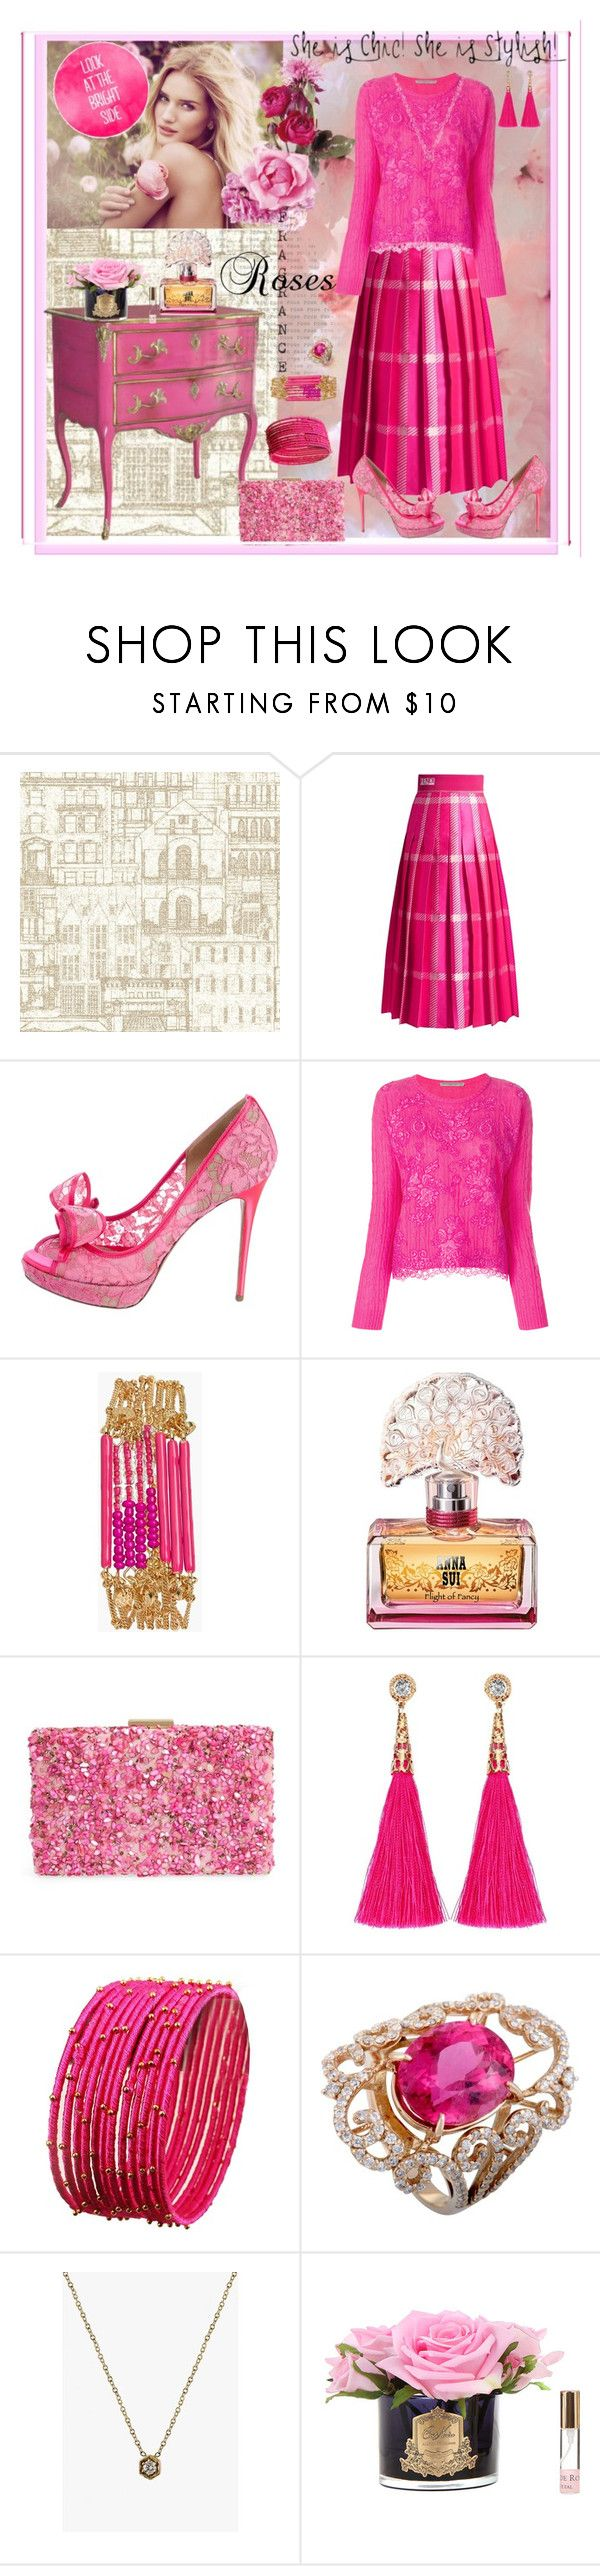 """Lovely Lace Blouse"" by sherrysrosecottage-1 ❤ liked on Polyvore featuring Brewster Home Fashions, Fendi, Valentino, Ermanno Scervino, Whiteley, Sequin, Anna Sui, Natasha, LUMO and Côte Noire"